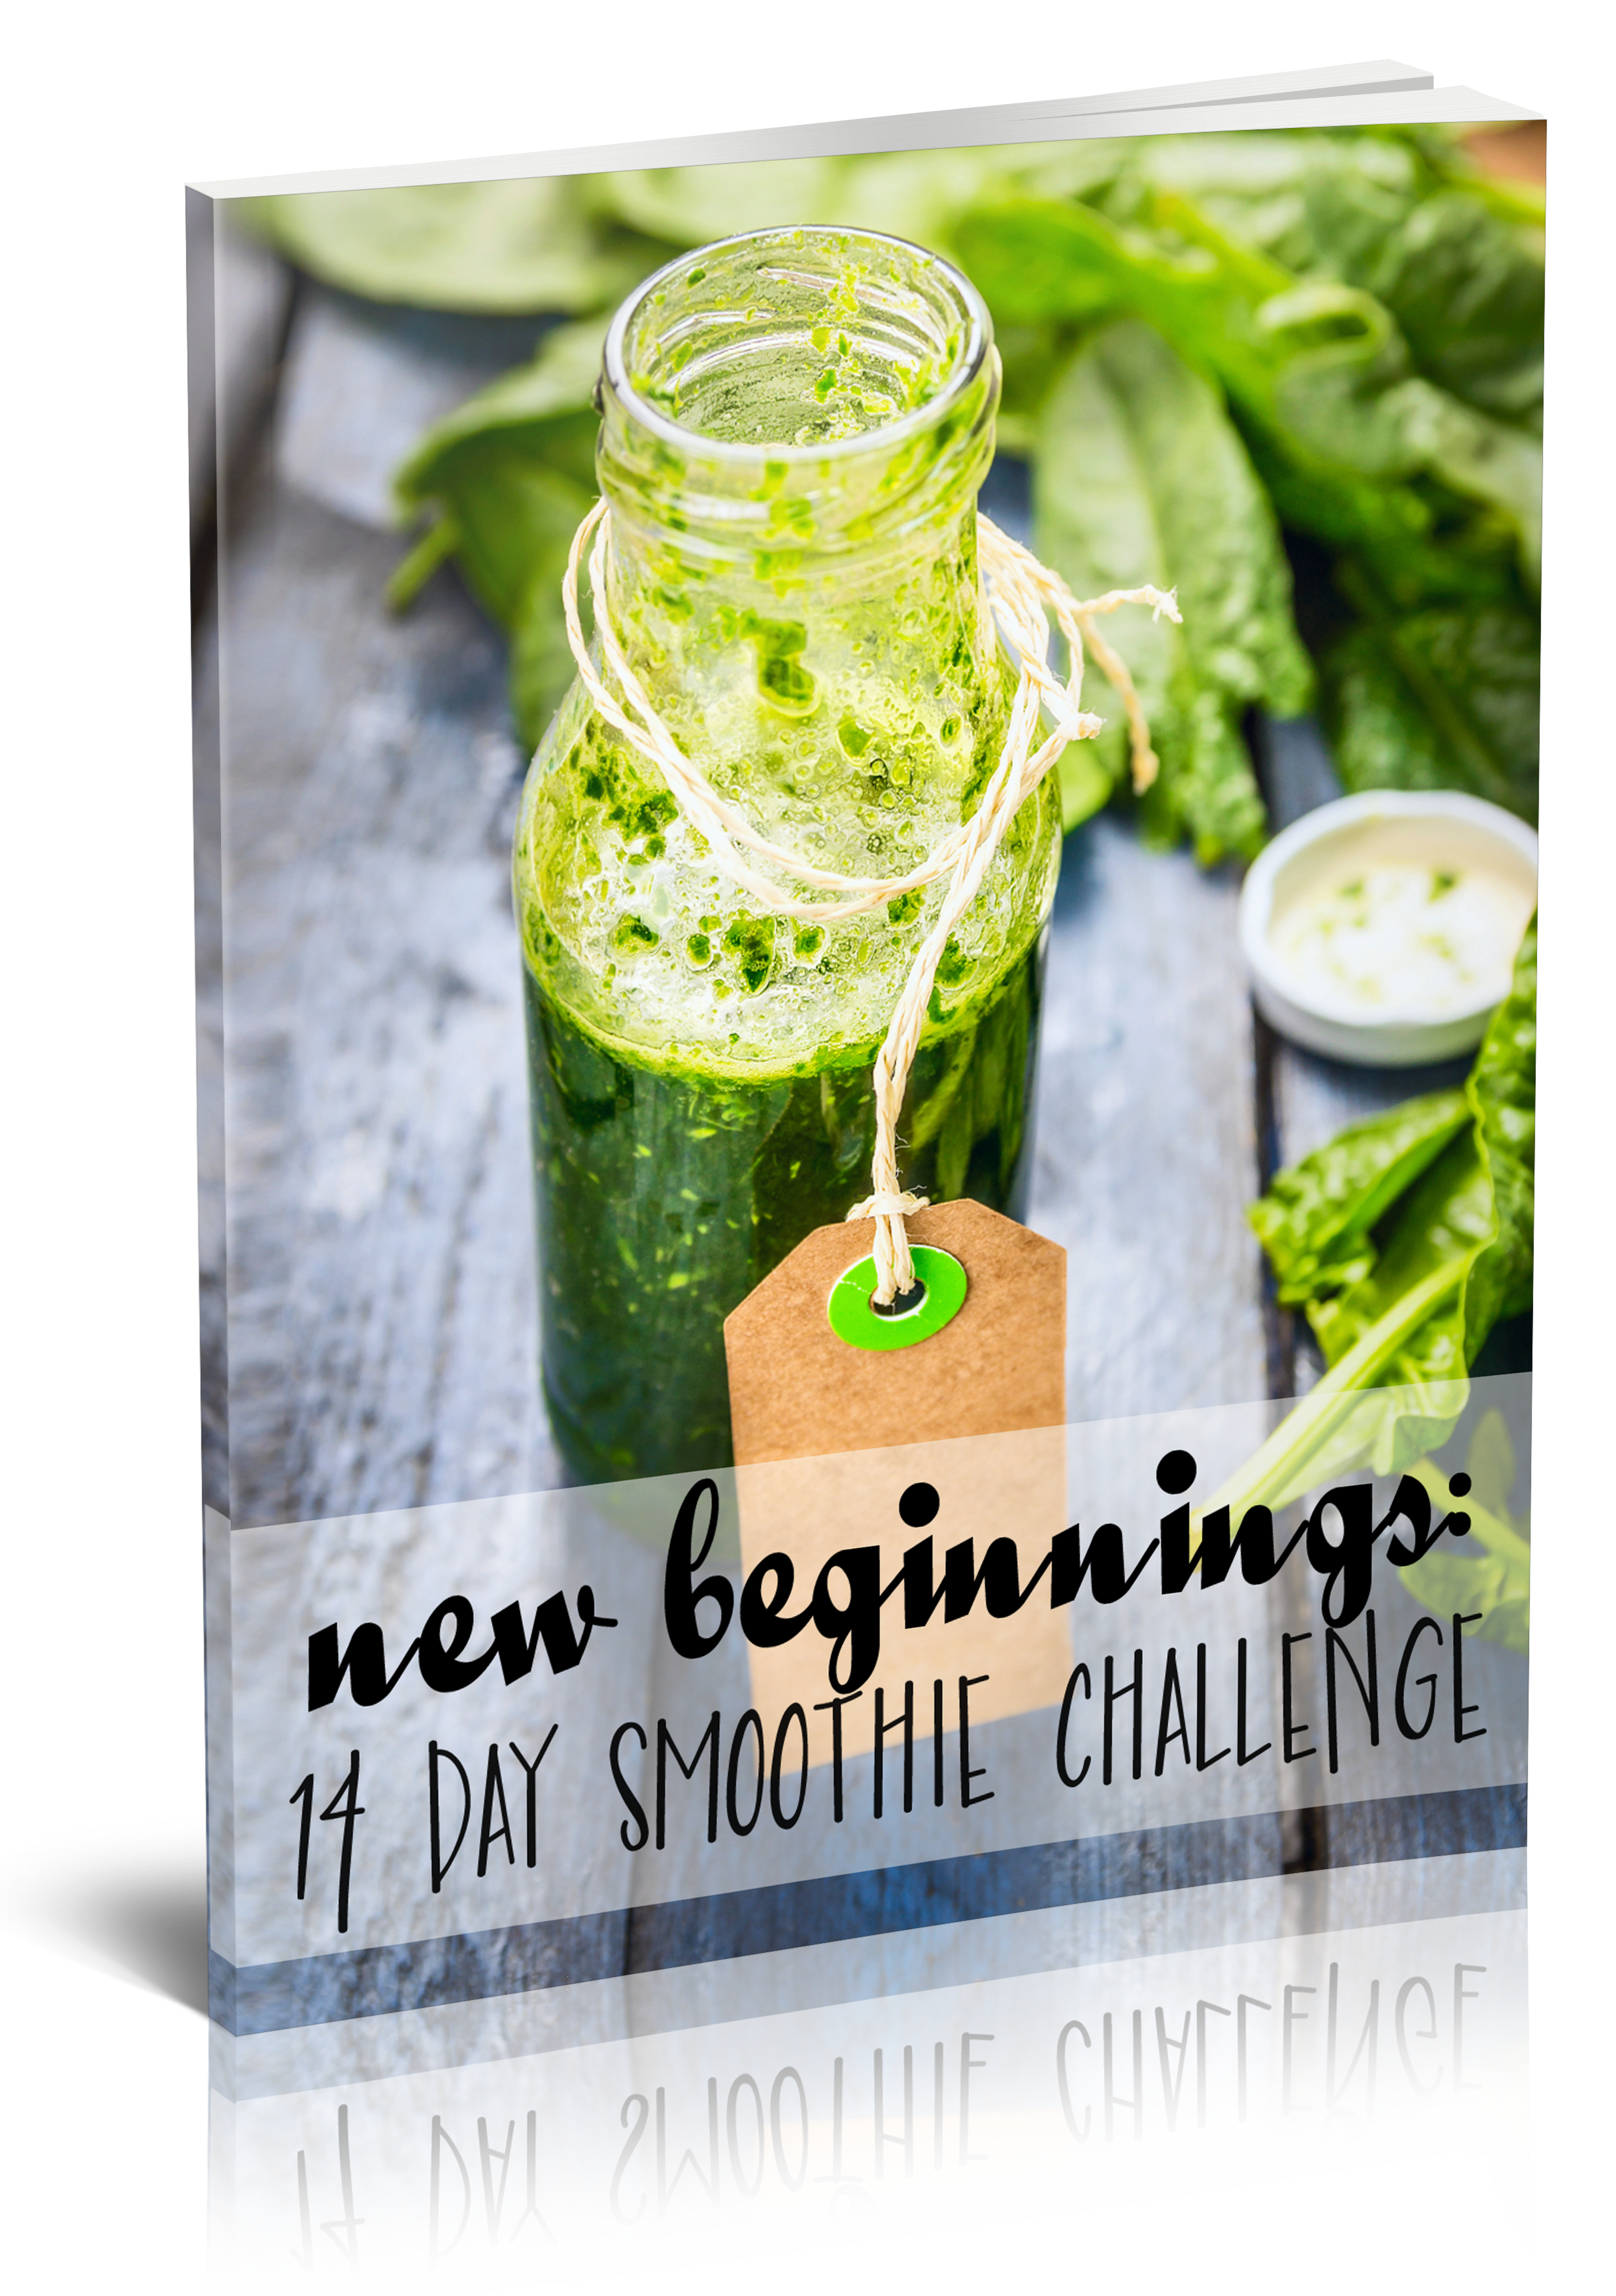 Join the #SmoothieChallenge!  The 14 Day Smoothie Challenge can reset eating habits, help eliminate cravings and kickstart a healthy Fall. This challenge is perfect for both smoothie enthusiasts and those new to the smoothie experience. The only equipment you need is a blender and organic produce is recommended.  You will feel the difference in just one day!